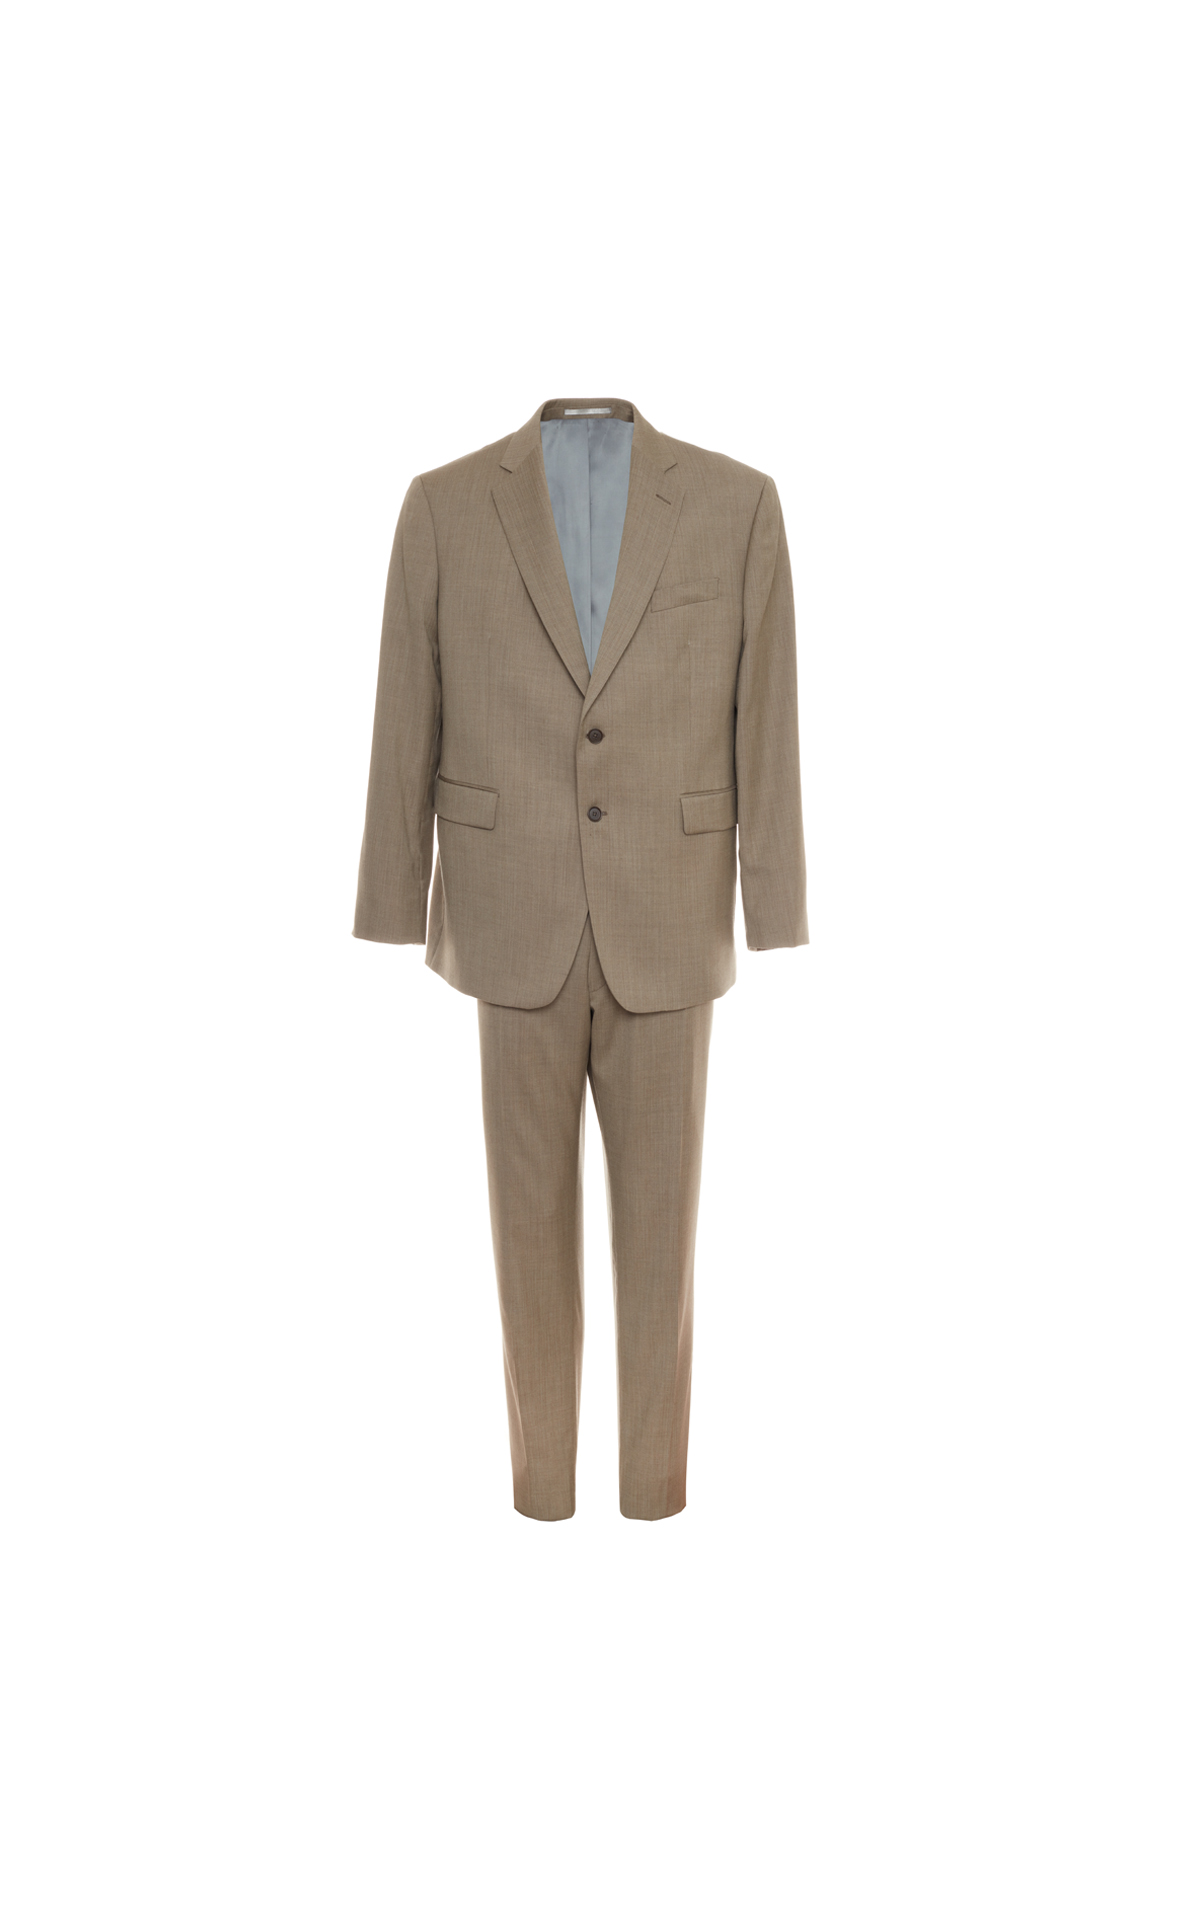 Charles Tyrwhitt Fawn suit from Bicester Village